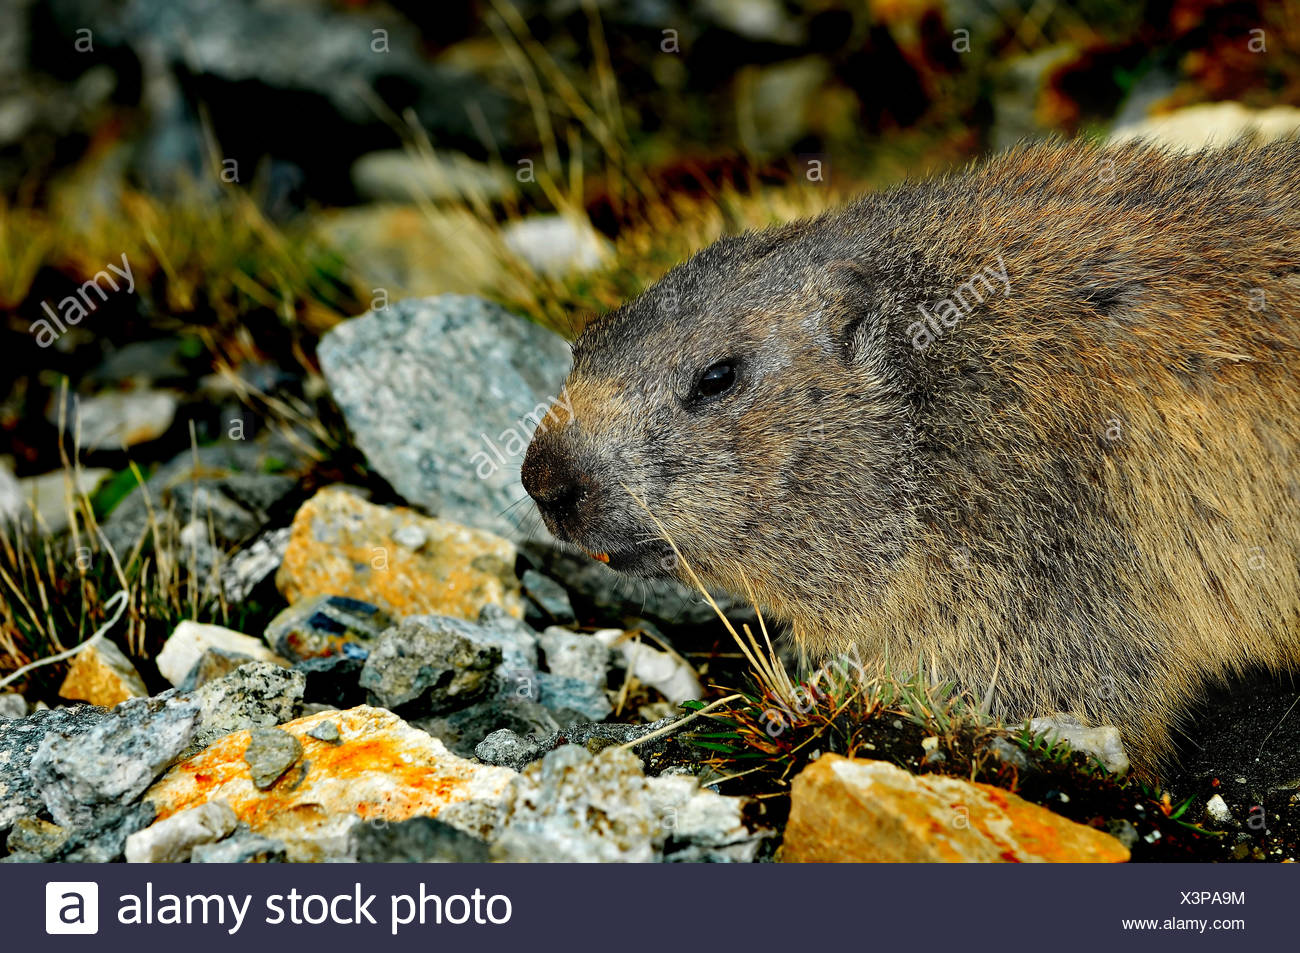 a wild marmot in the spring looking cautious - Stock Image